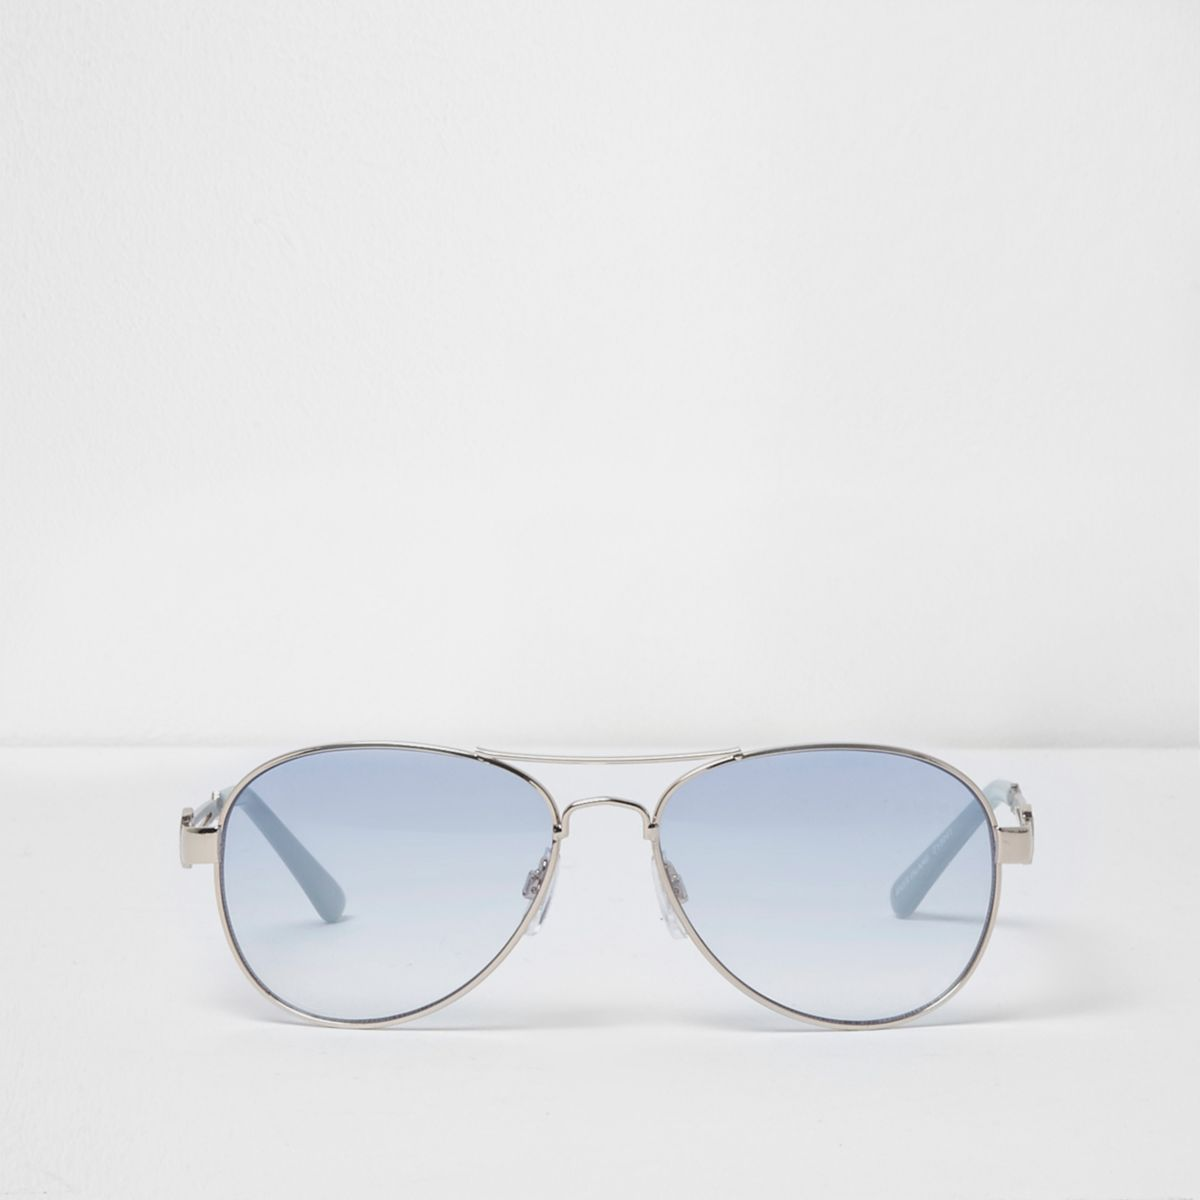 Silver tone blue lens aviator sunglasses